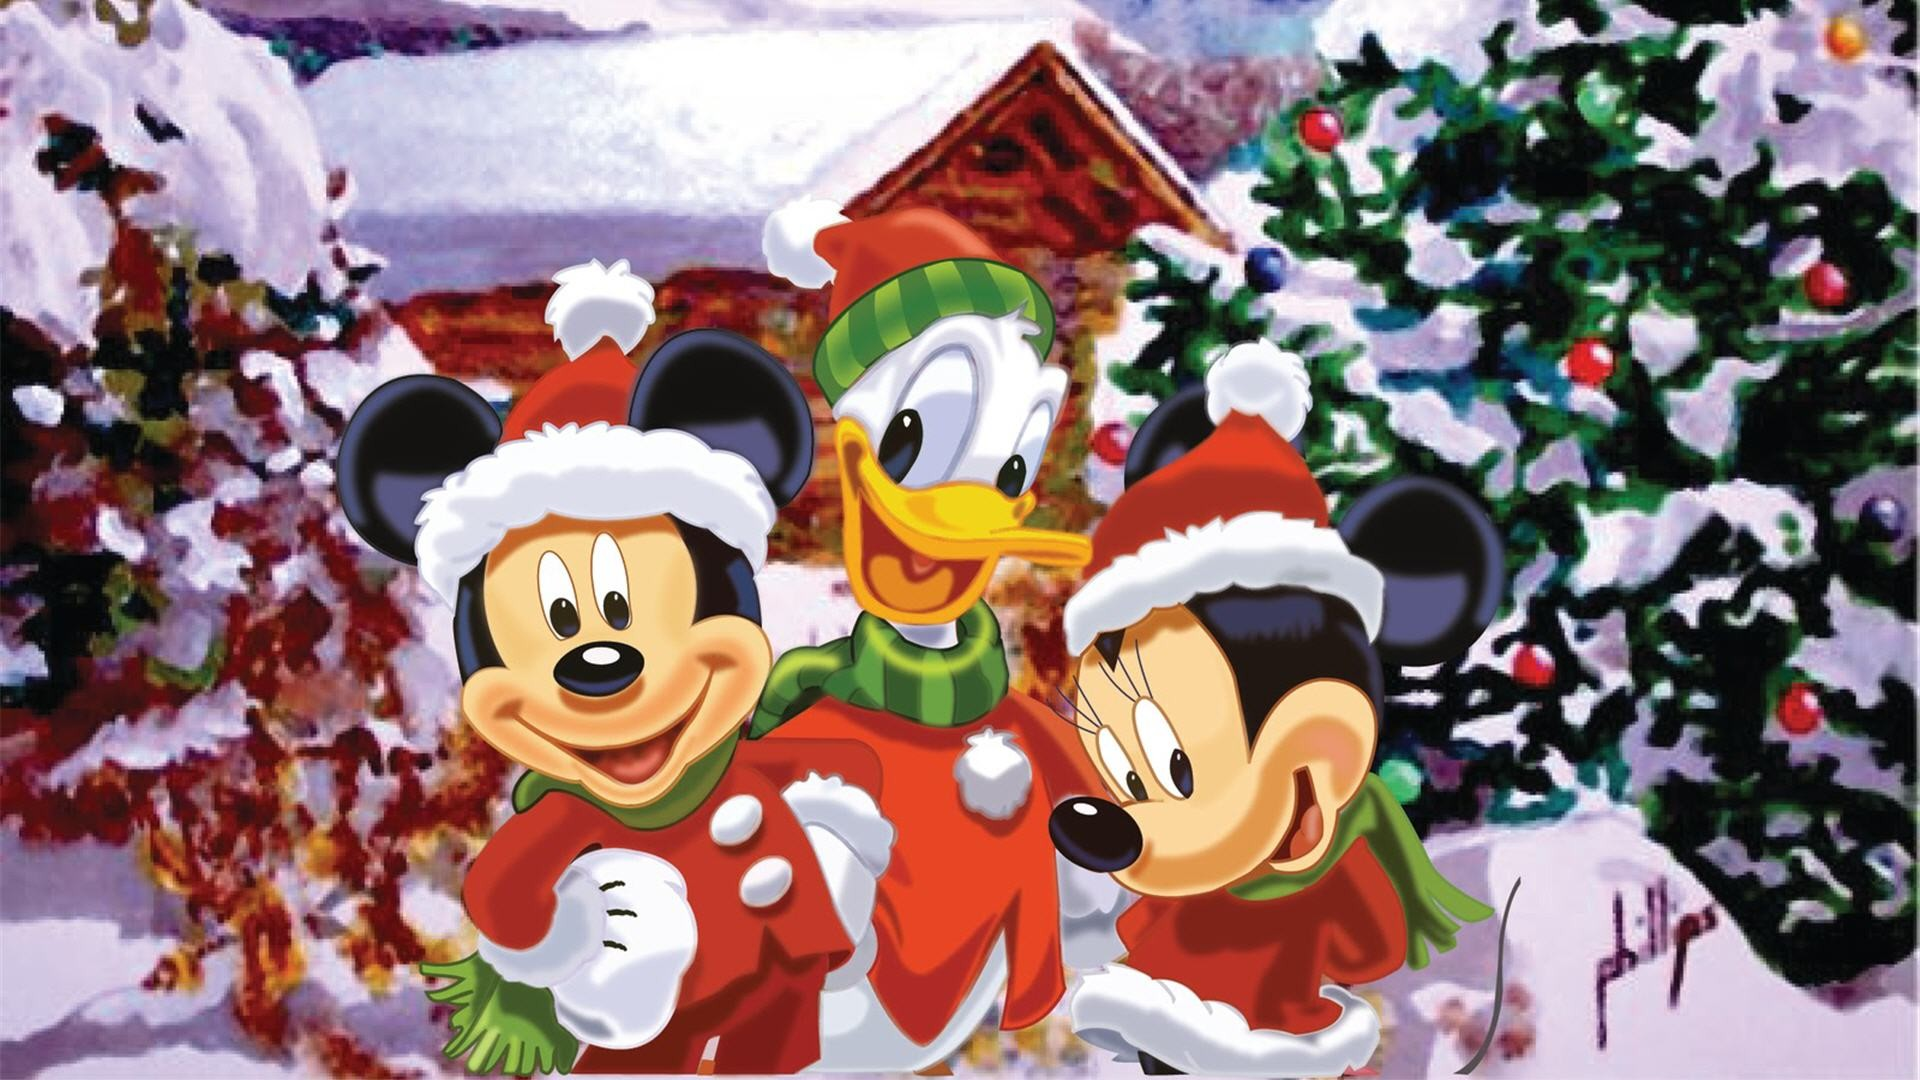 1920x1080 mickey mouse clubhouse images minnie rella prince mickey and prince pluto hd wallpaper and background photos - Mickey Mouse Clubhouse Christmas